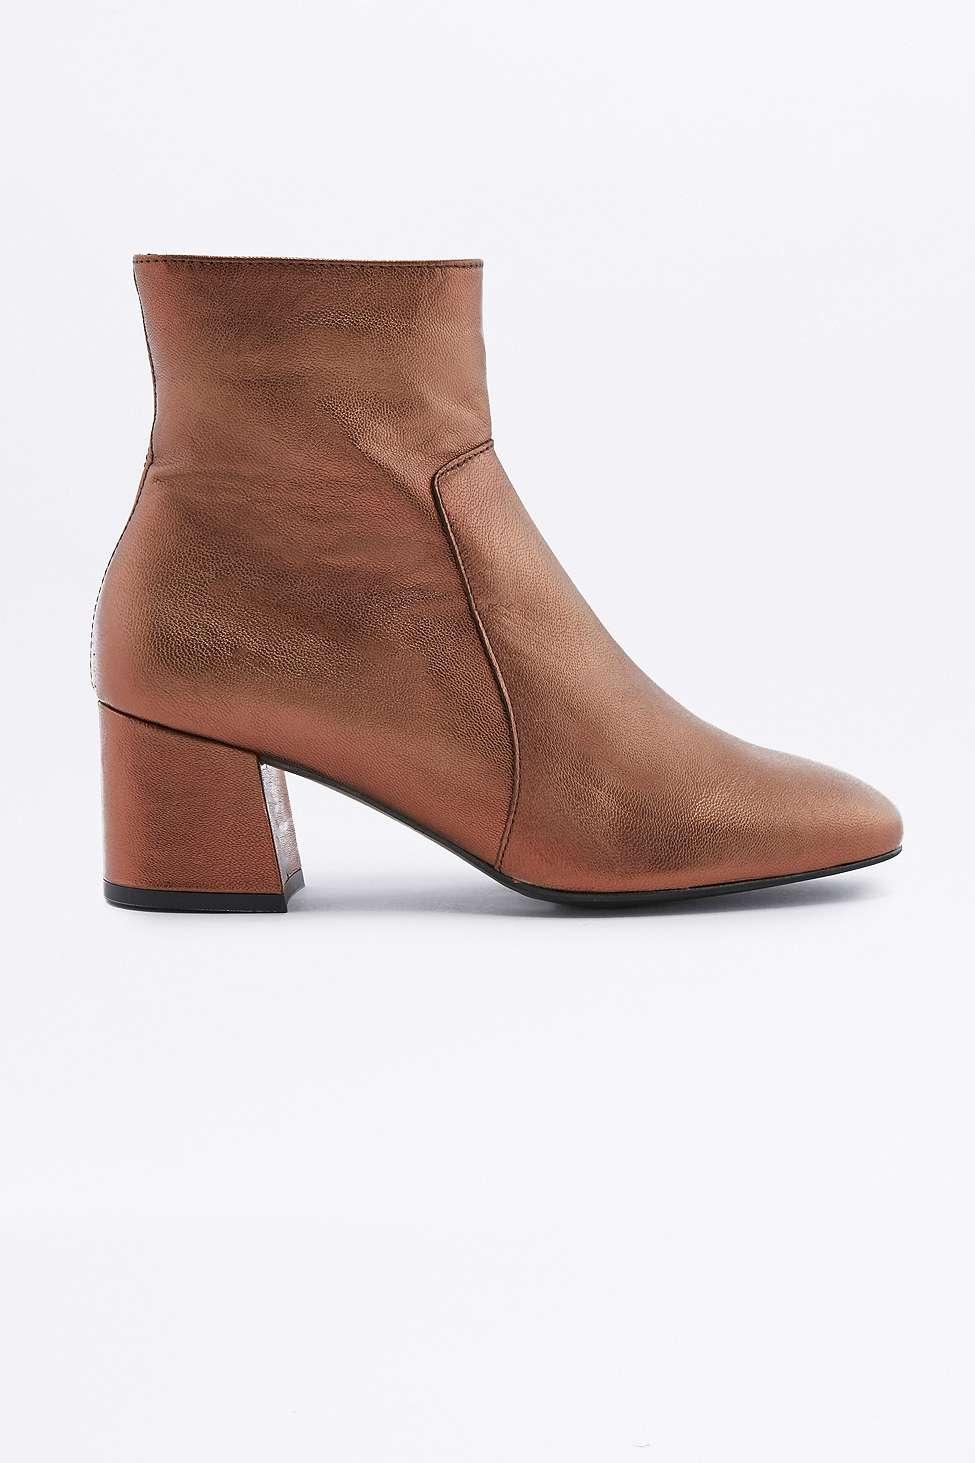 Urban Outfitters Poppy Metallic Orange Leather Ankle Boots